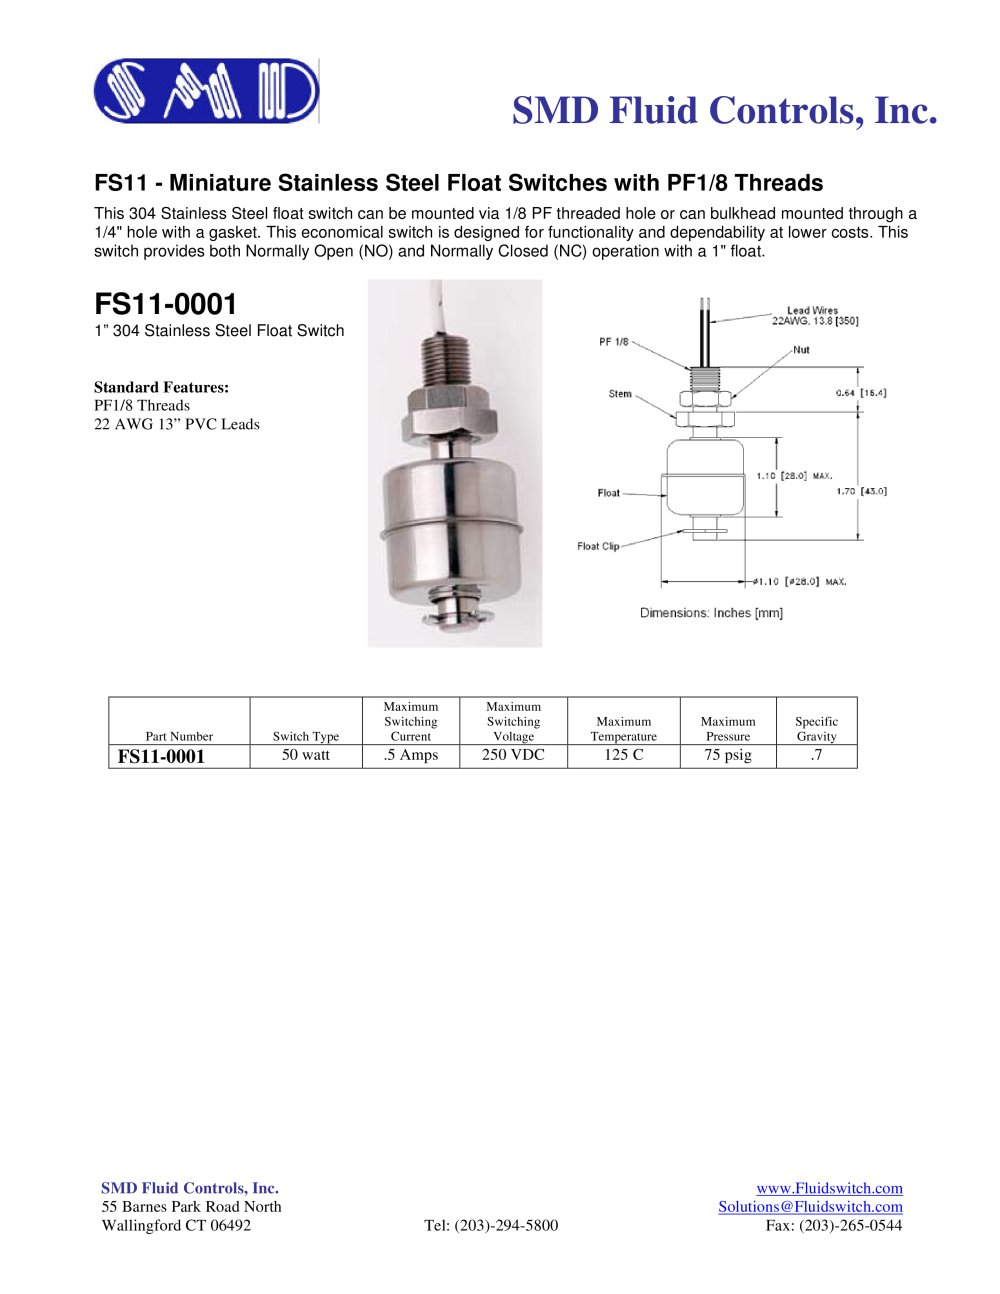 FS11 Miniature Stainless Steel Float Level Switches 1 1 Pages